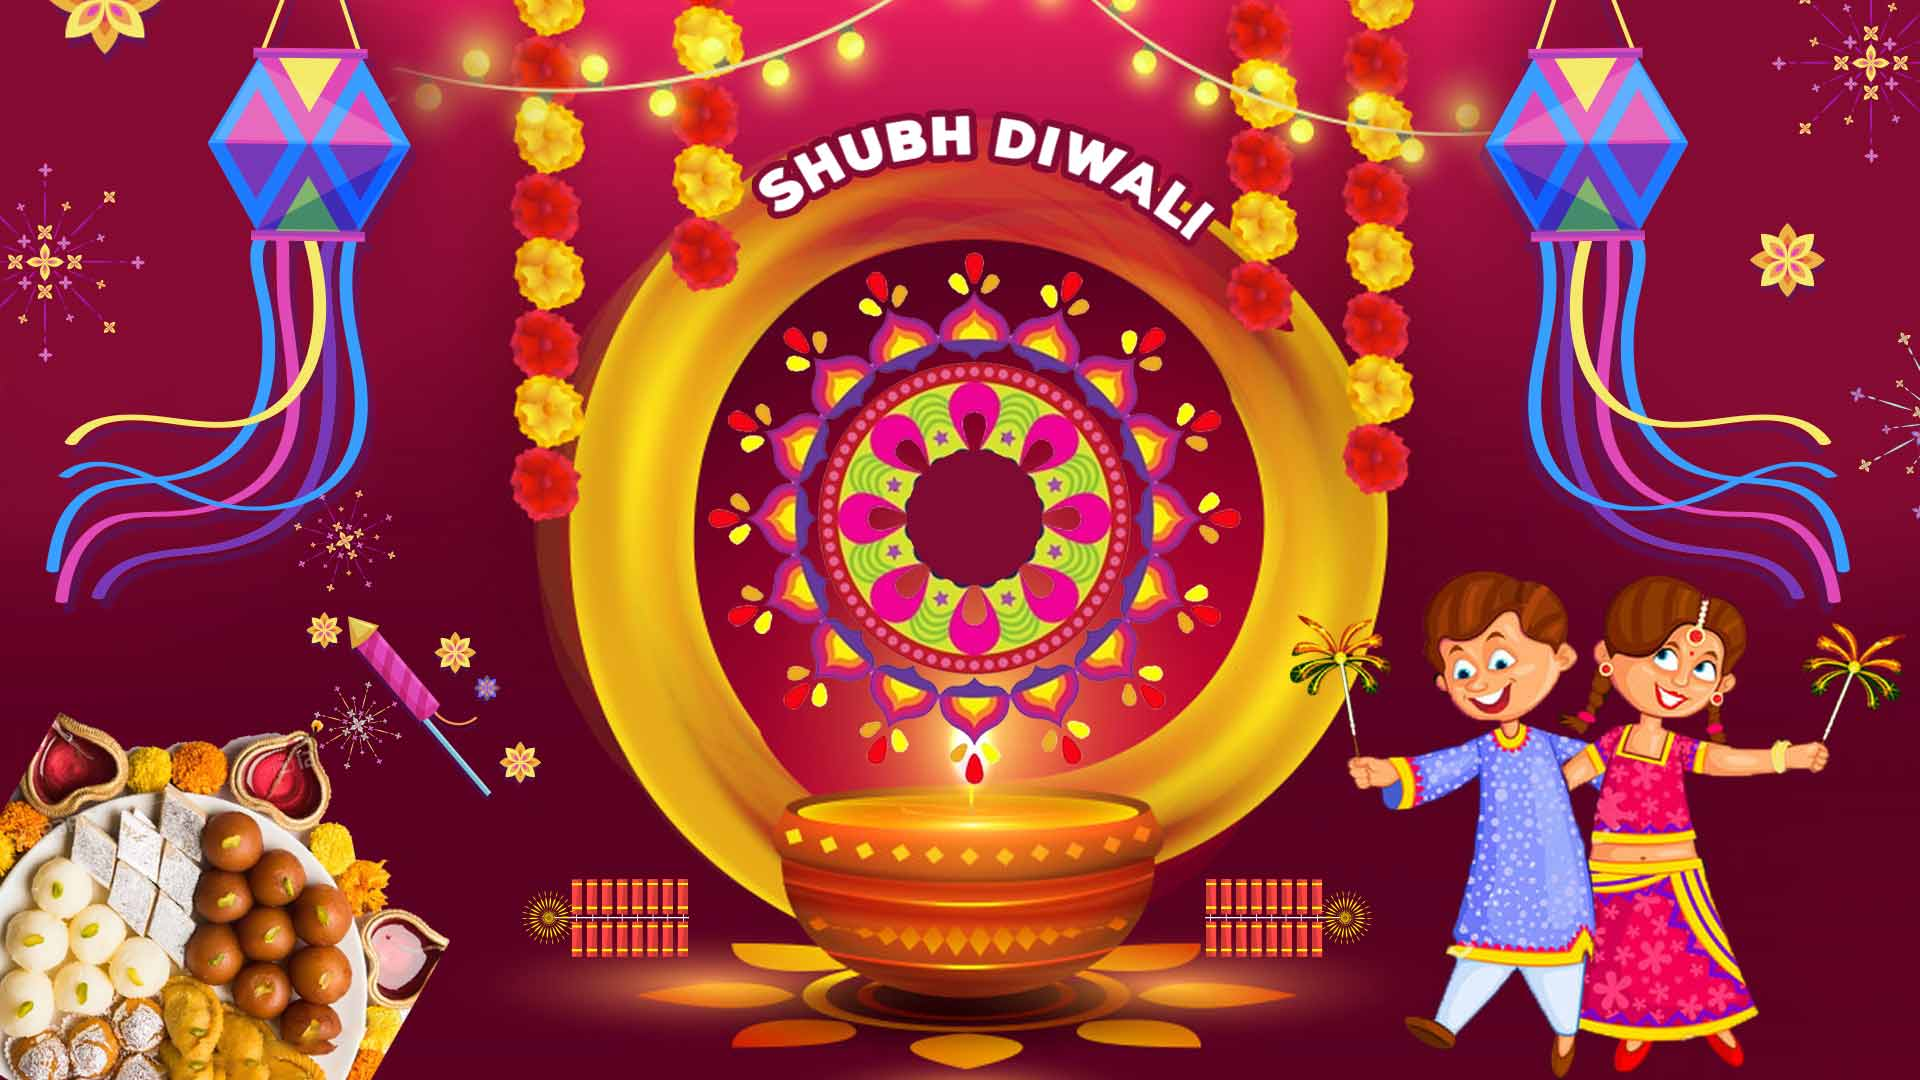 Diwali Decoration Ideas For Your Home: DIY